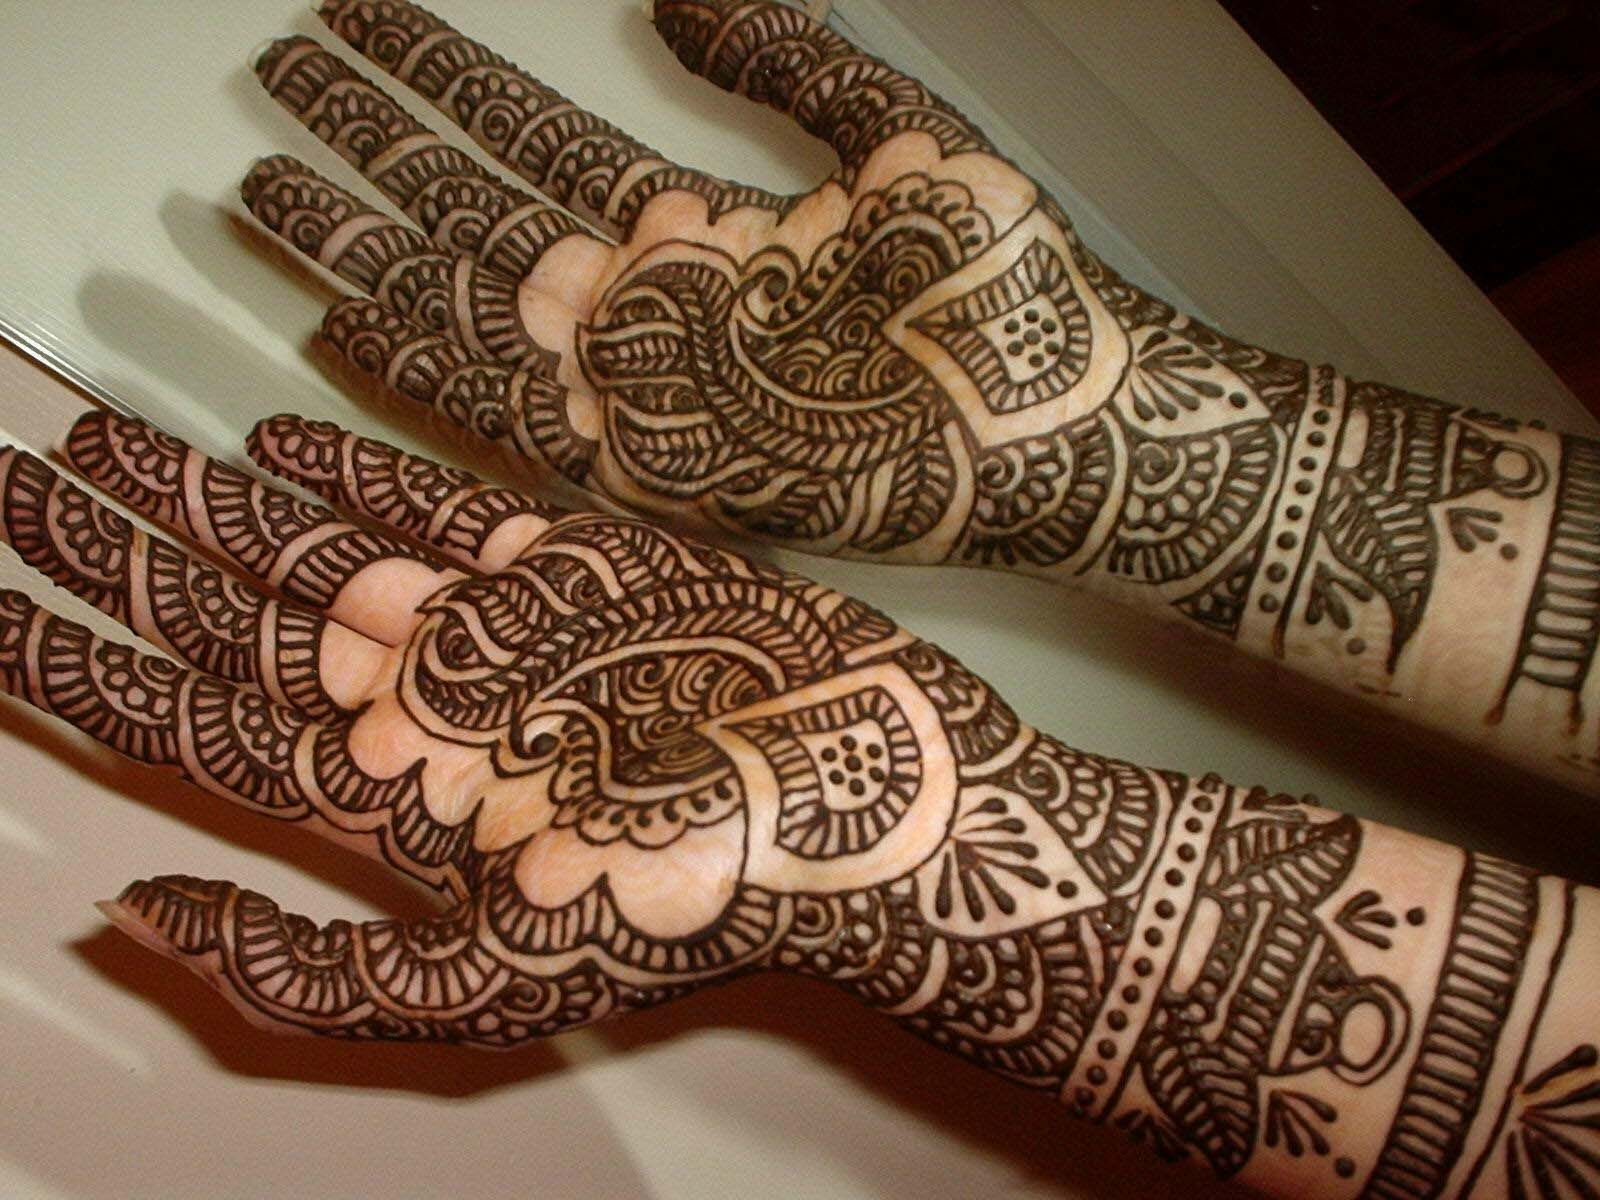 Indian Hand Tattoos For Women Indian Women For Hand Tattoo Pic